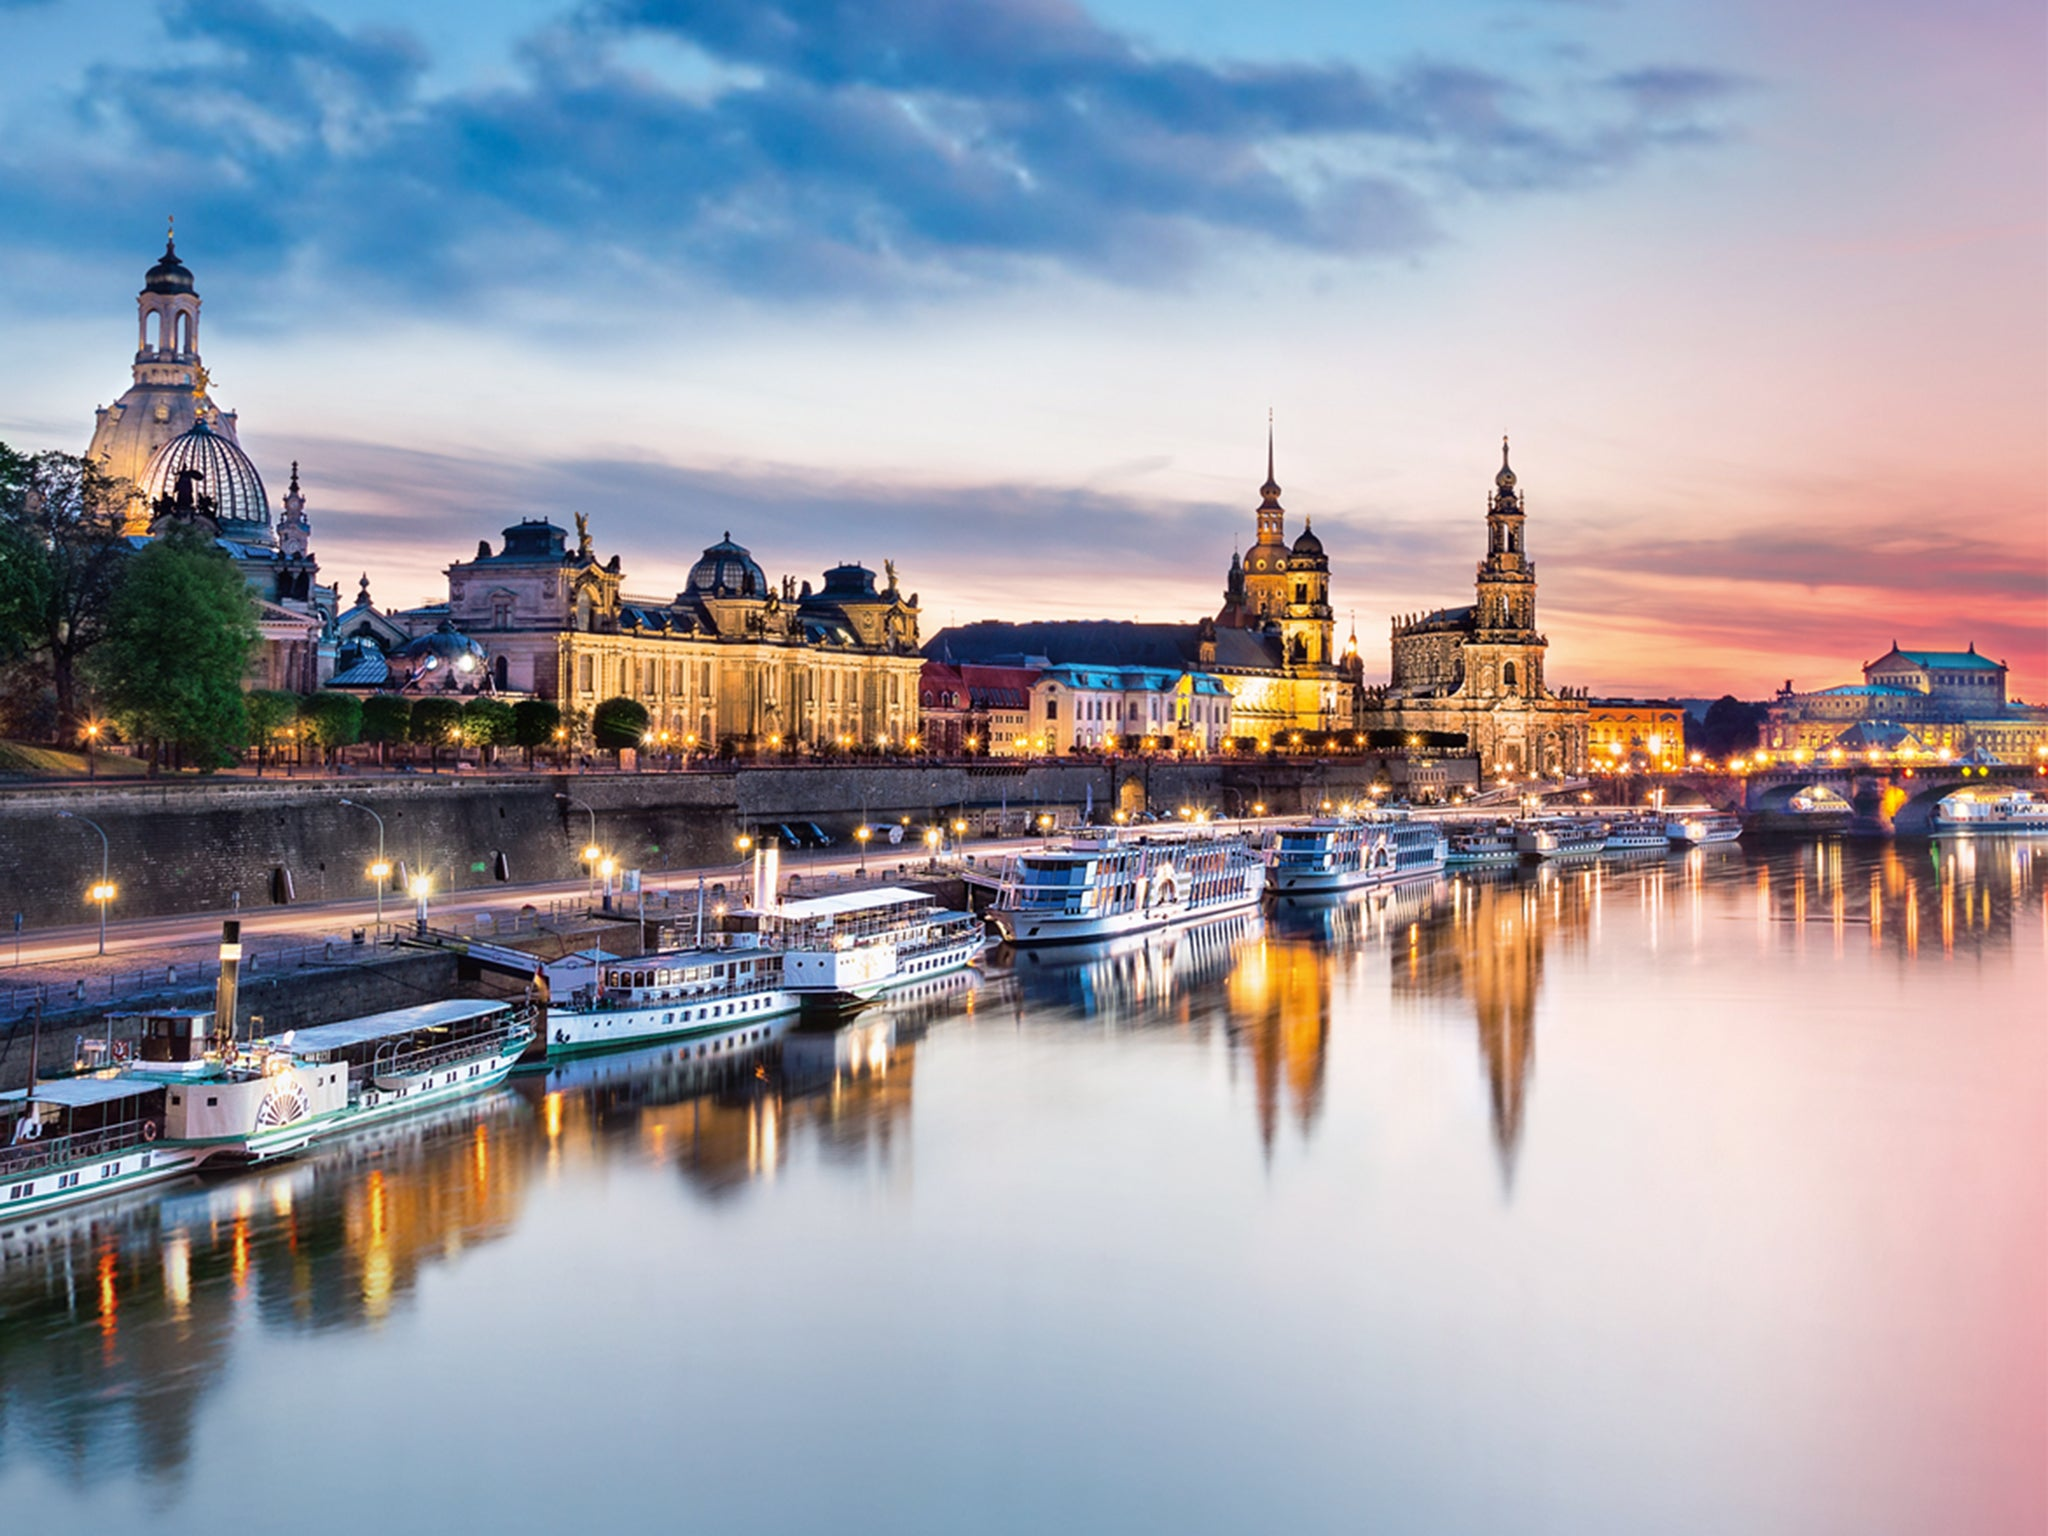 Dresden: A beauty that rose from the wreckage - Europe - Travel - The ...